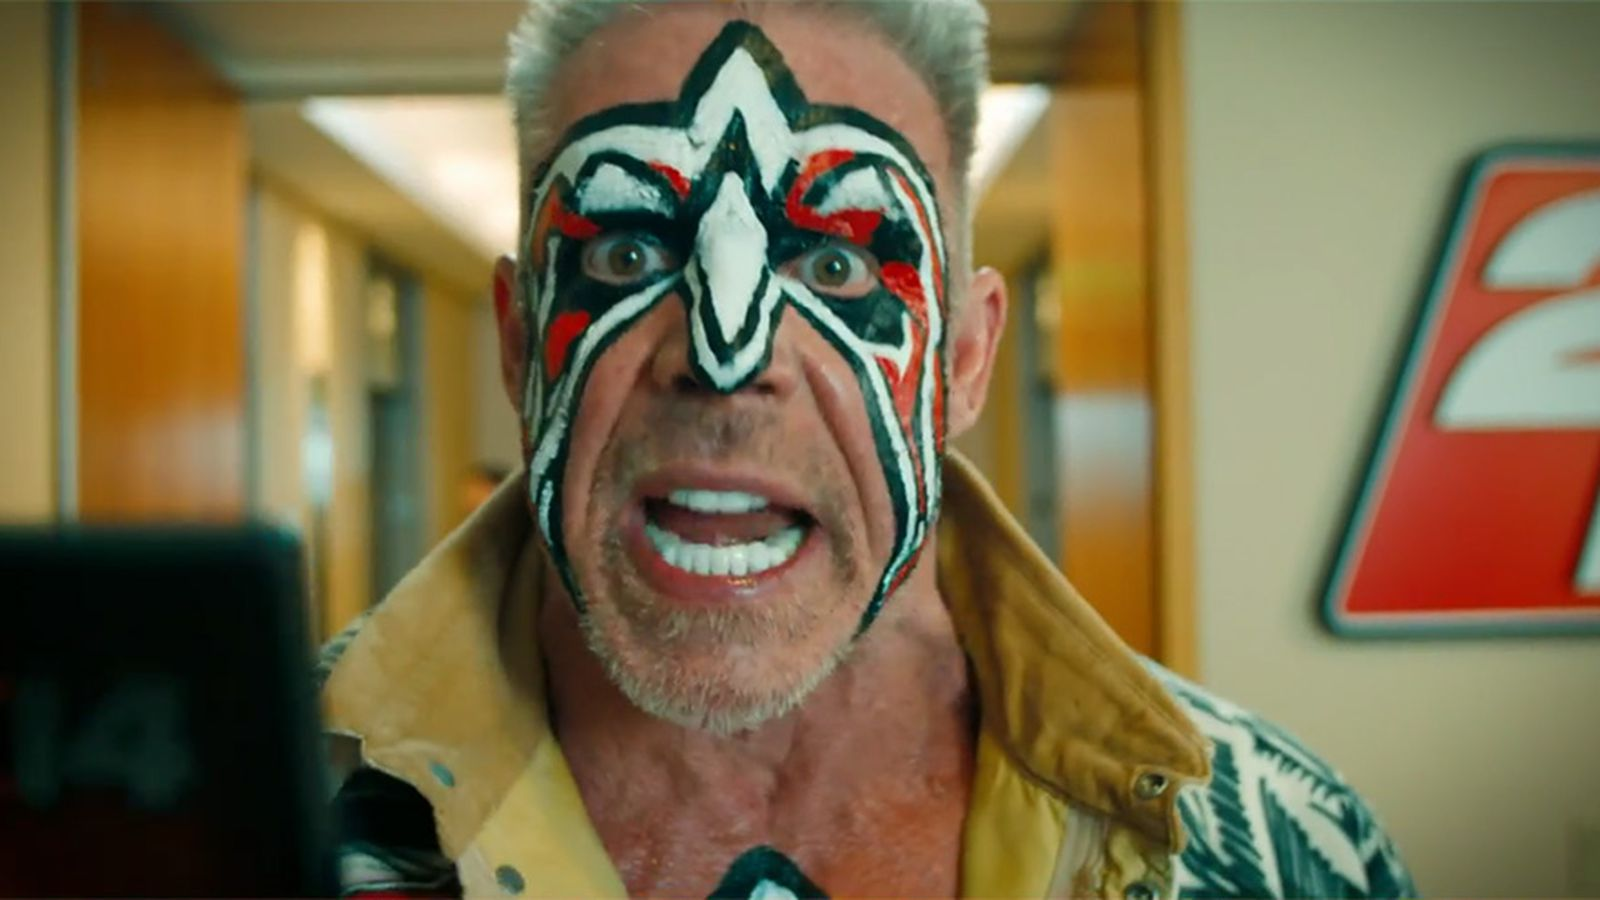 ultimate warrior exclusive to wwe 2k14 pre-orders - polygon